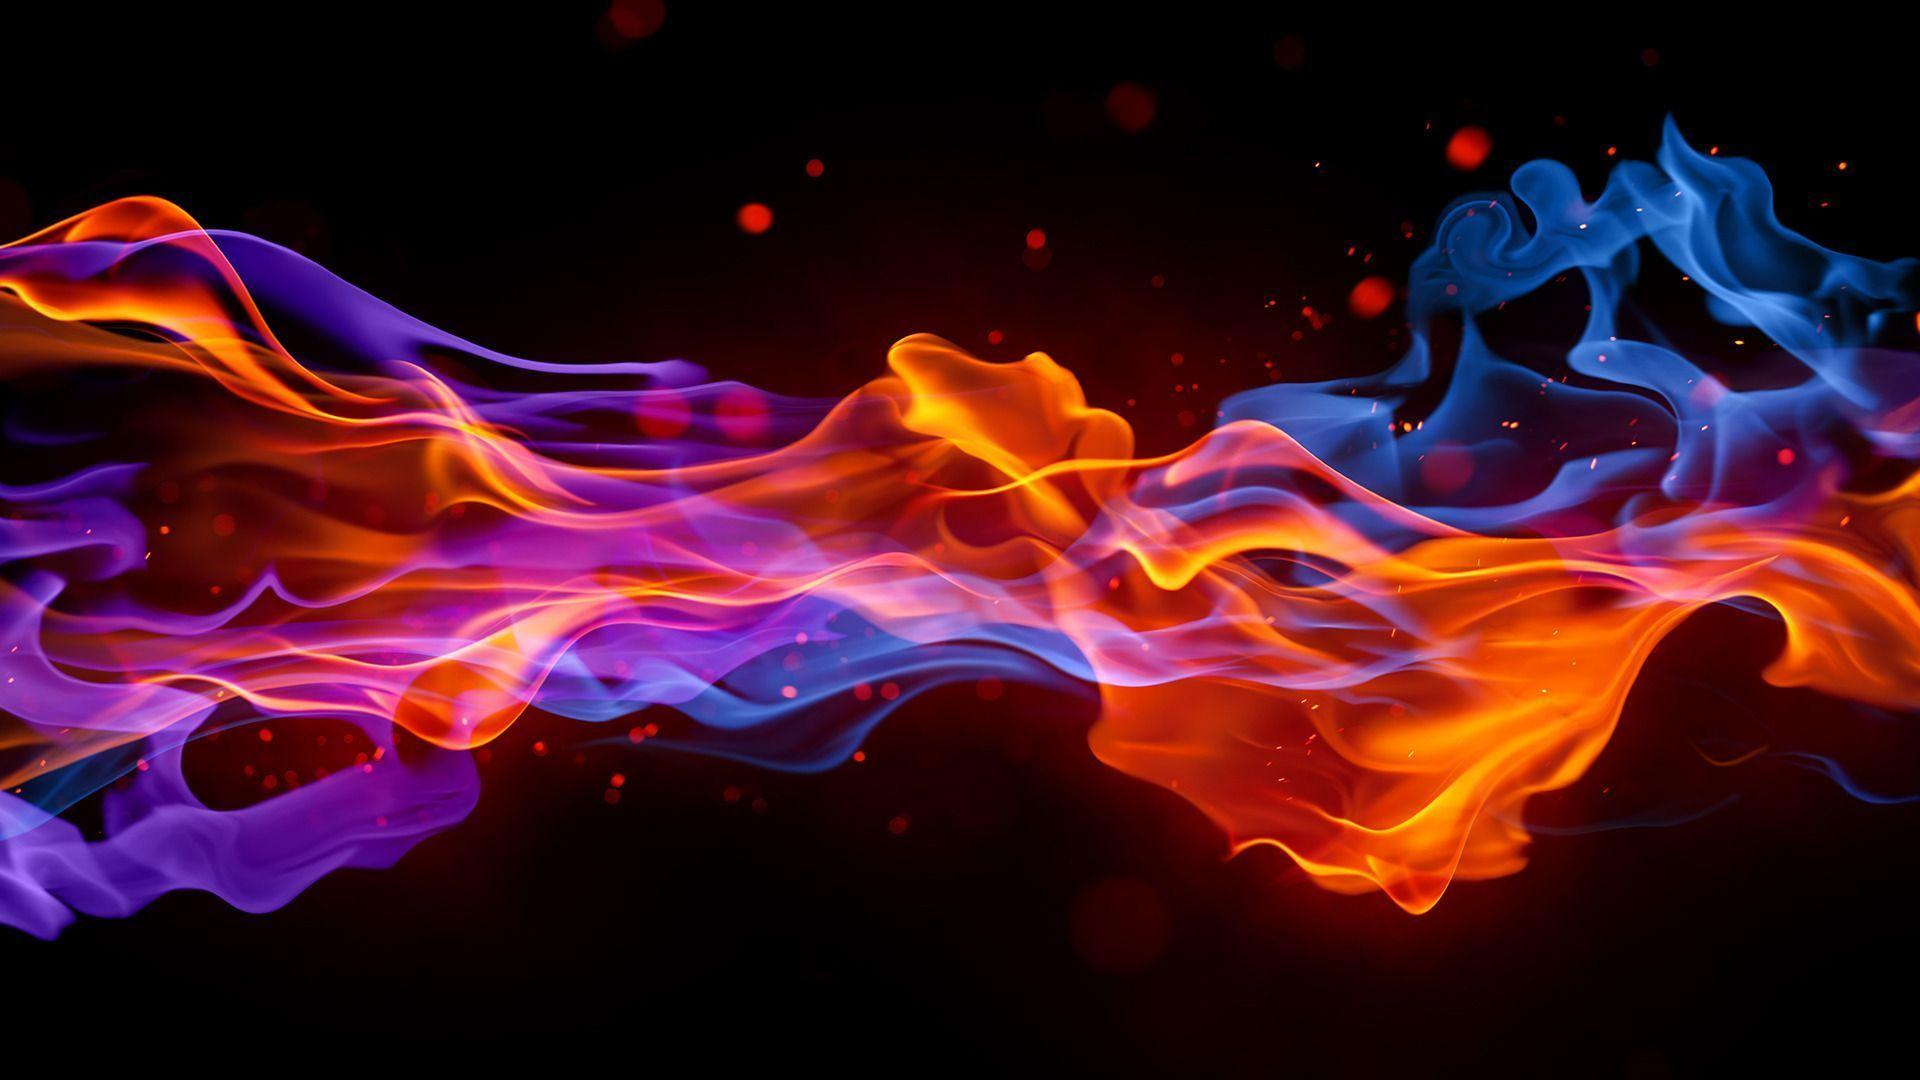 hd wallpapers desktop fire - photo #16